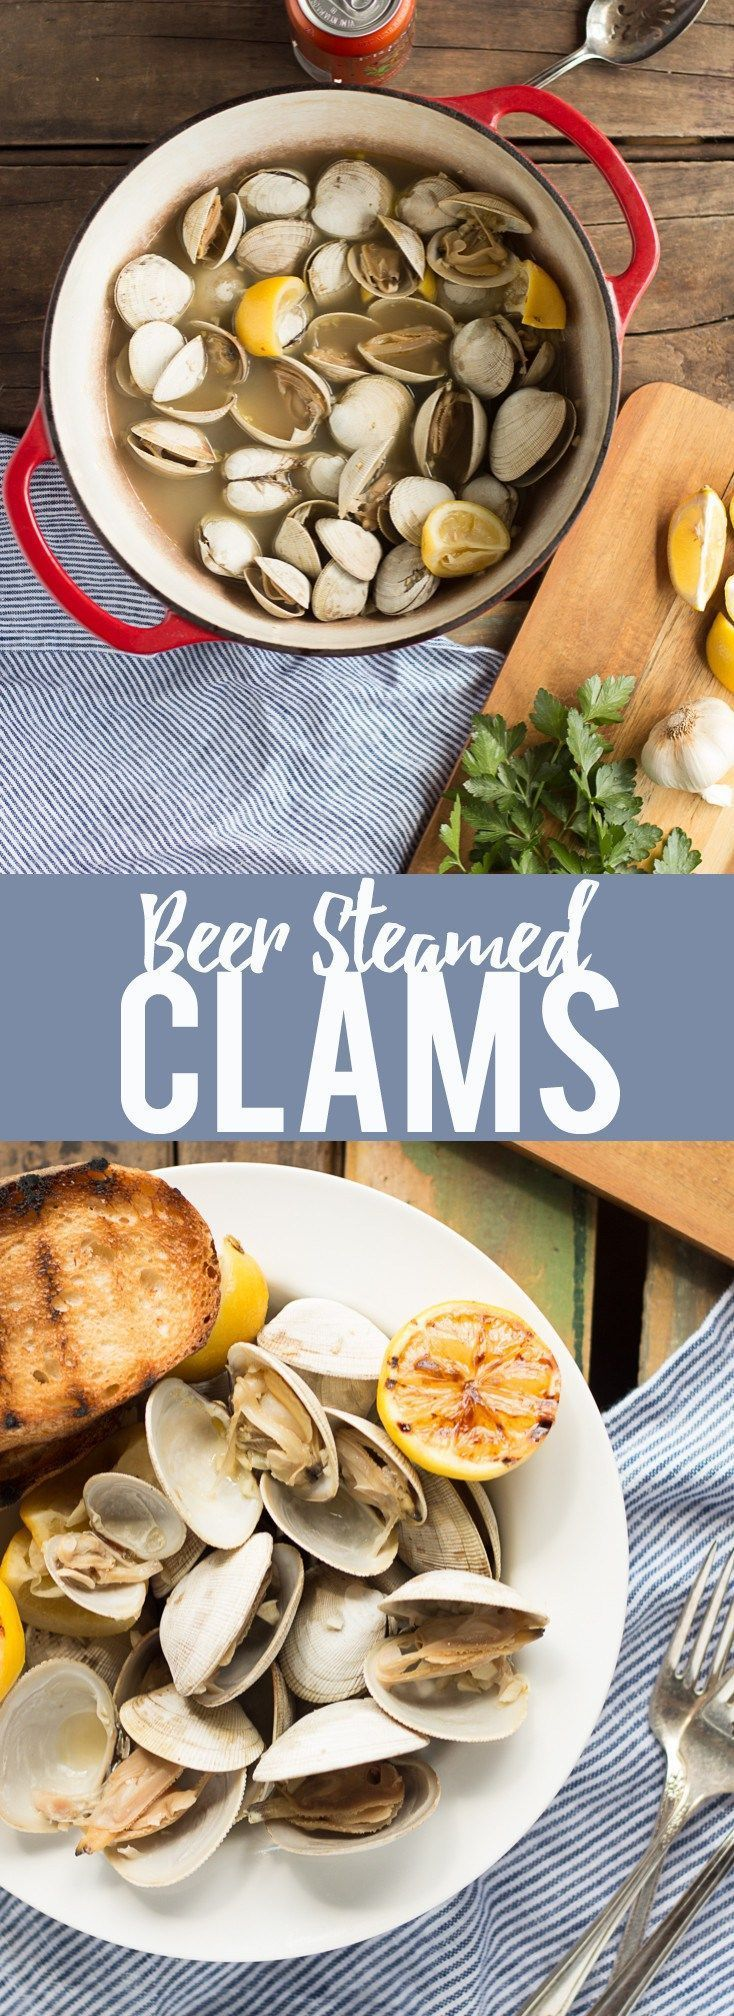 Learn how to make this simple recipe for Beer Steamed Clams - so easy you can even make them on the campfire!